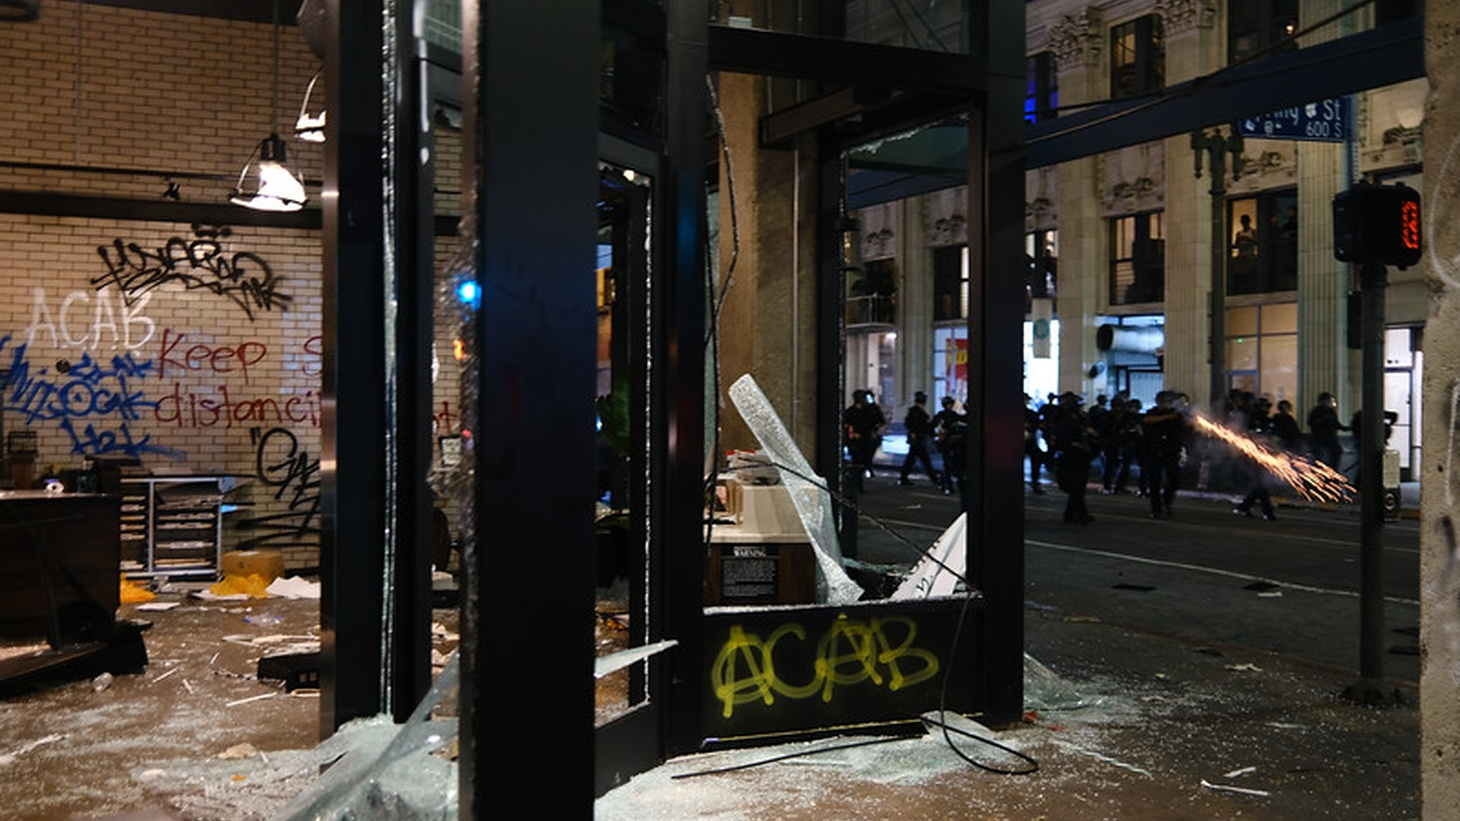 Broken storefronts in downtown Los Angeles after protests turned into looting May 29. Some of the White Supremacist groups involved in Charlottesville were also behind the violence in recent national protests.